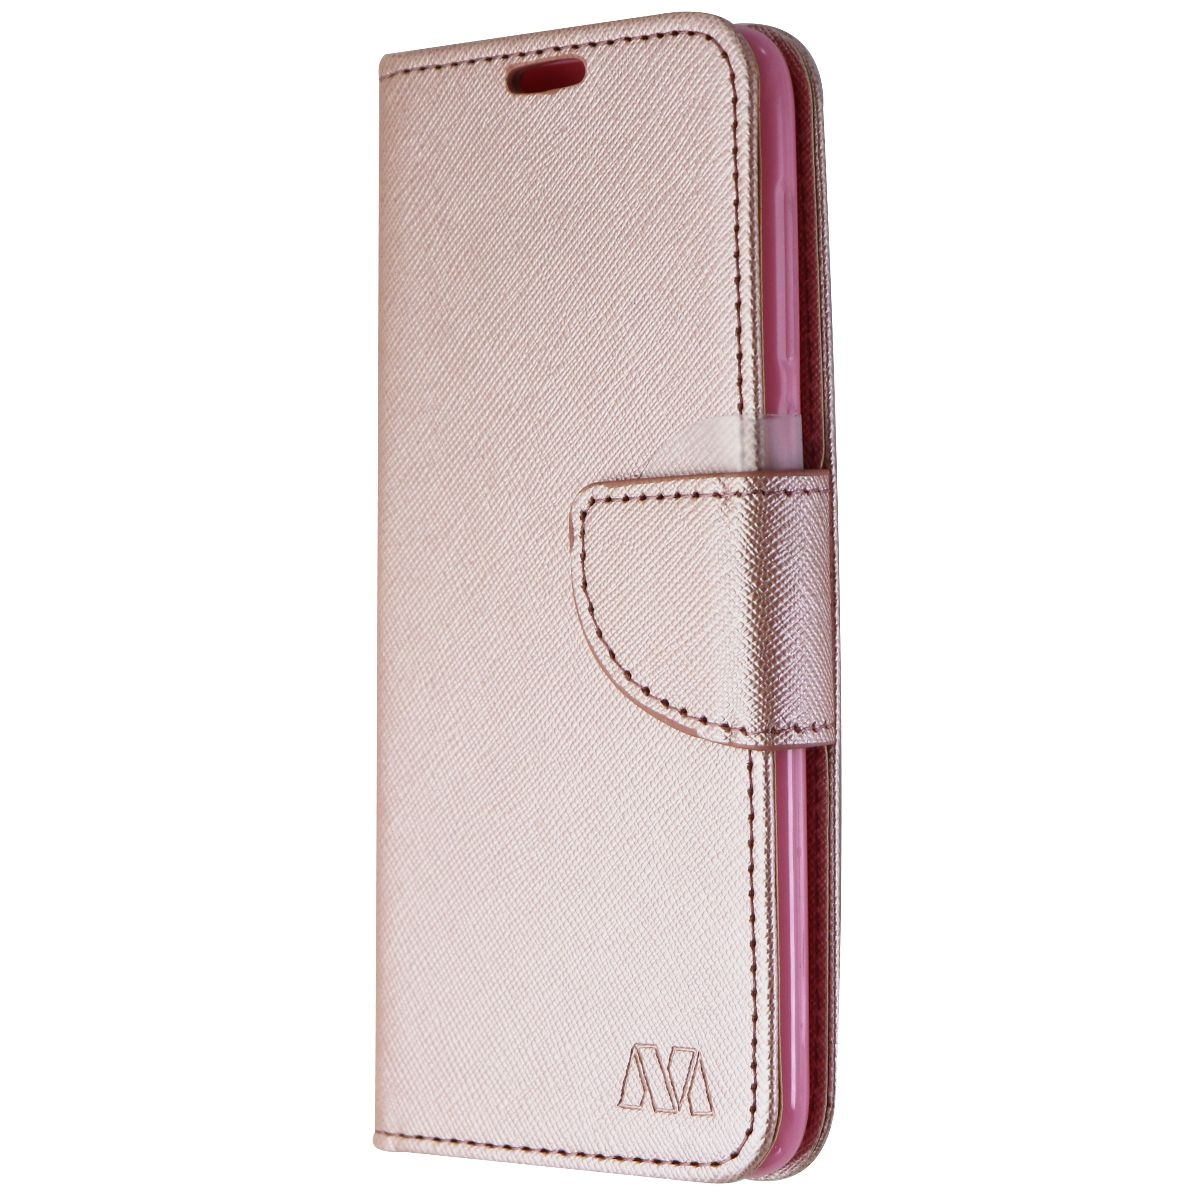 MyBat Folio Wallet Case for Alcatel Revvl 2 - Pink Saffiano